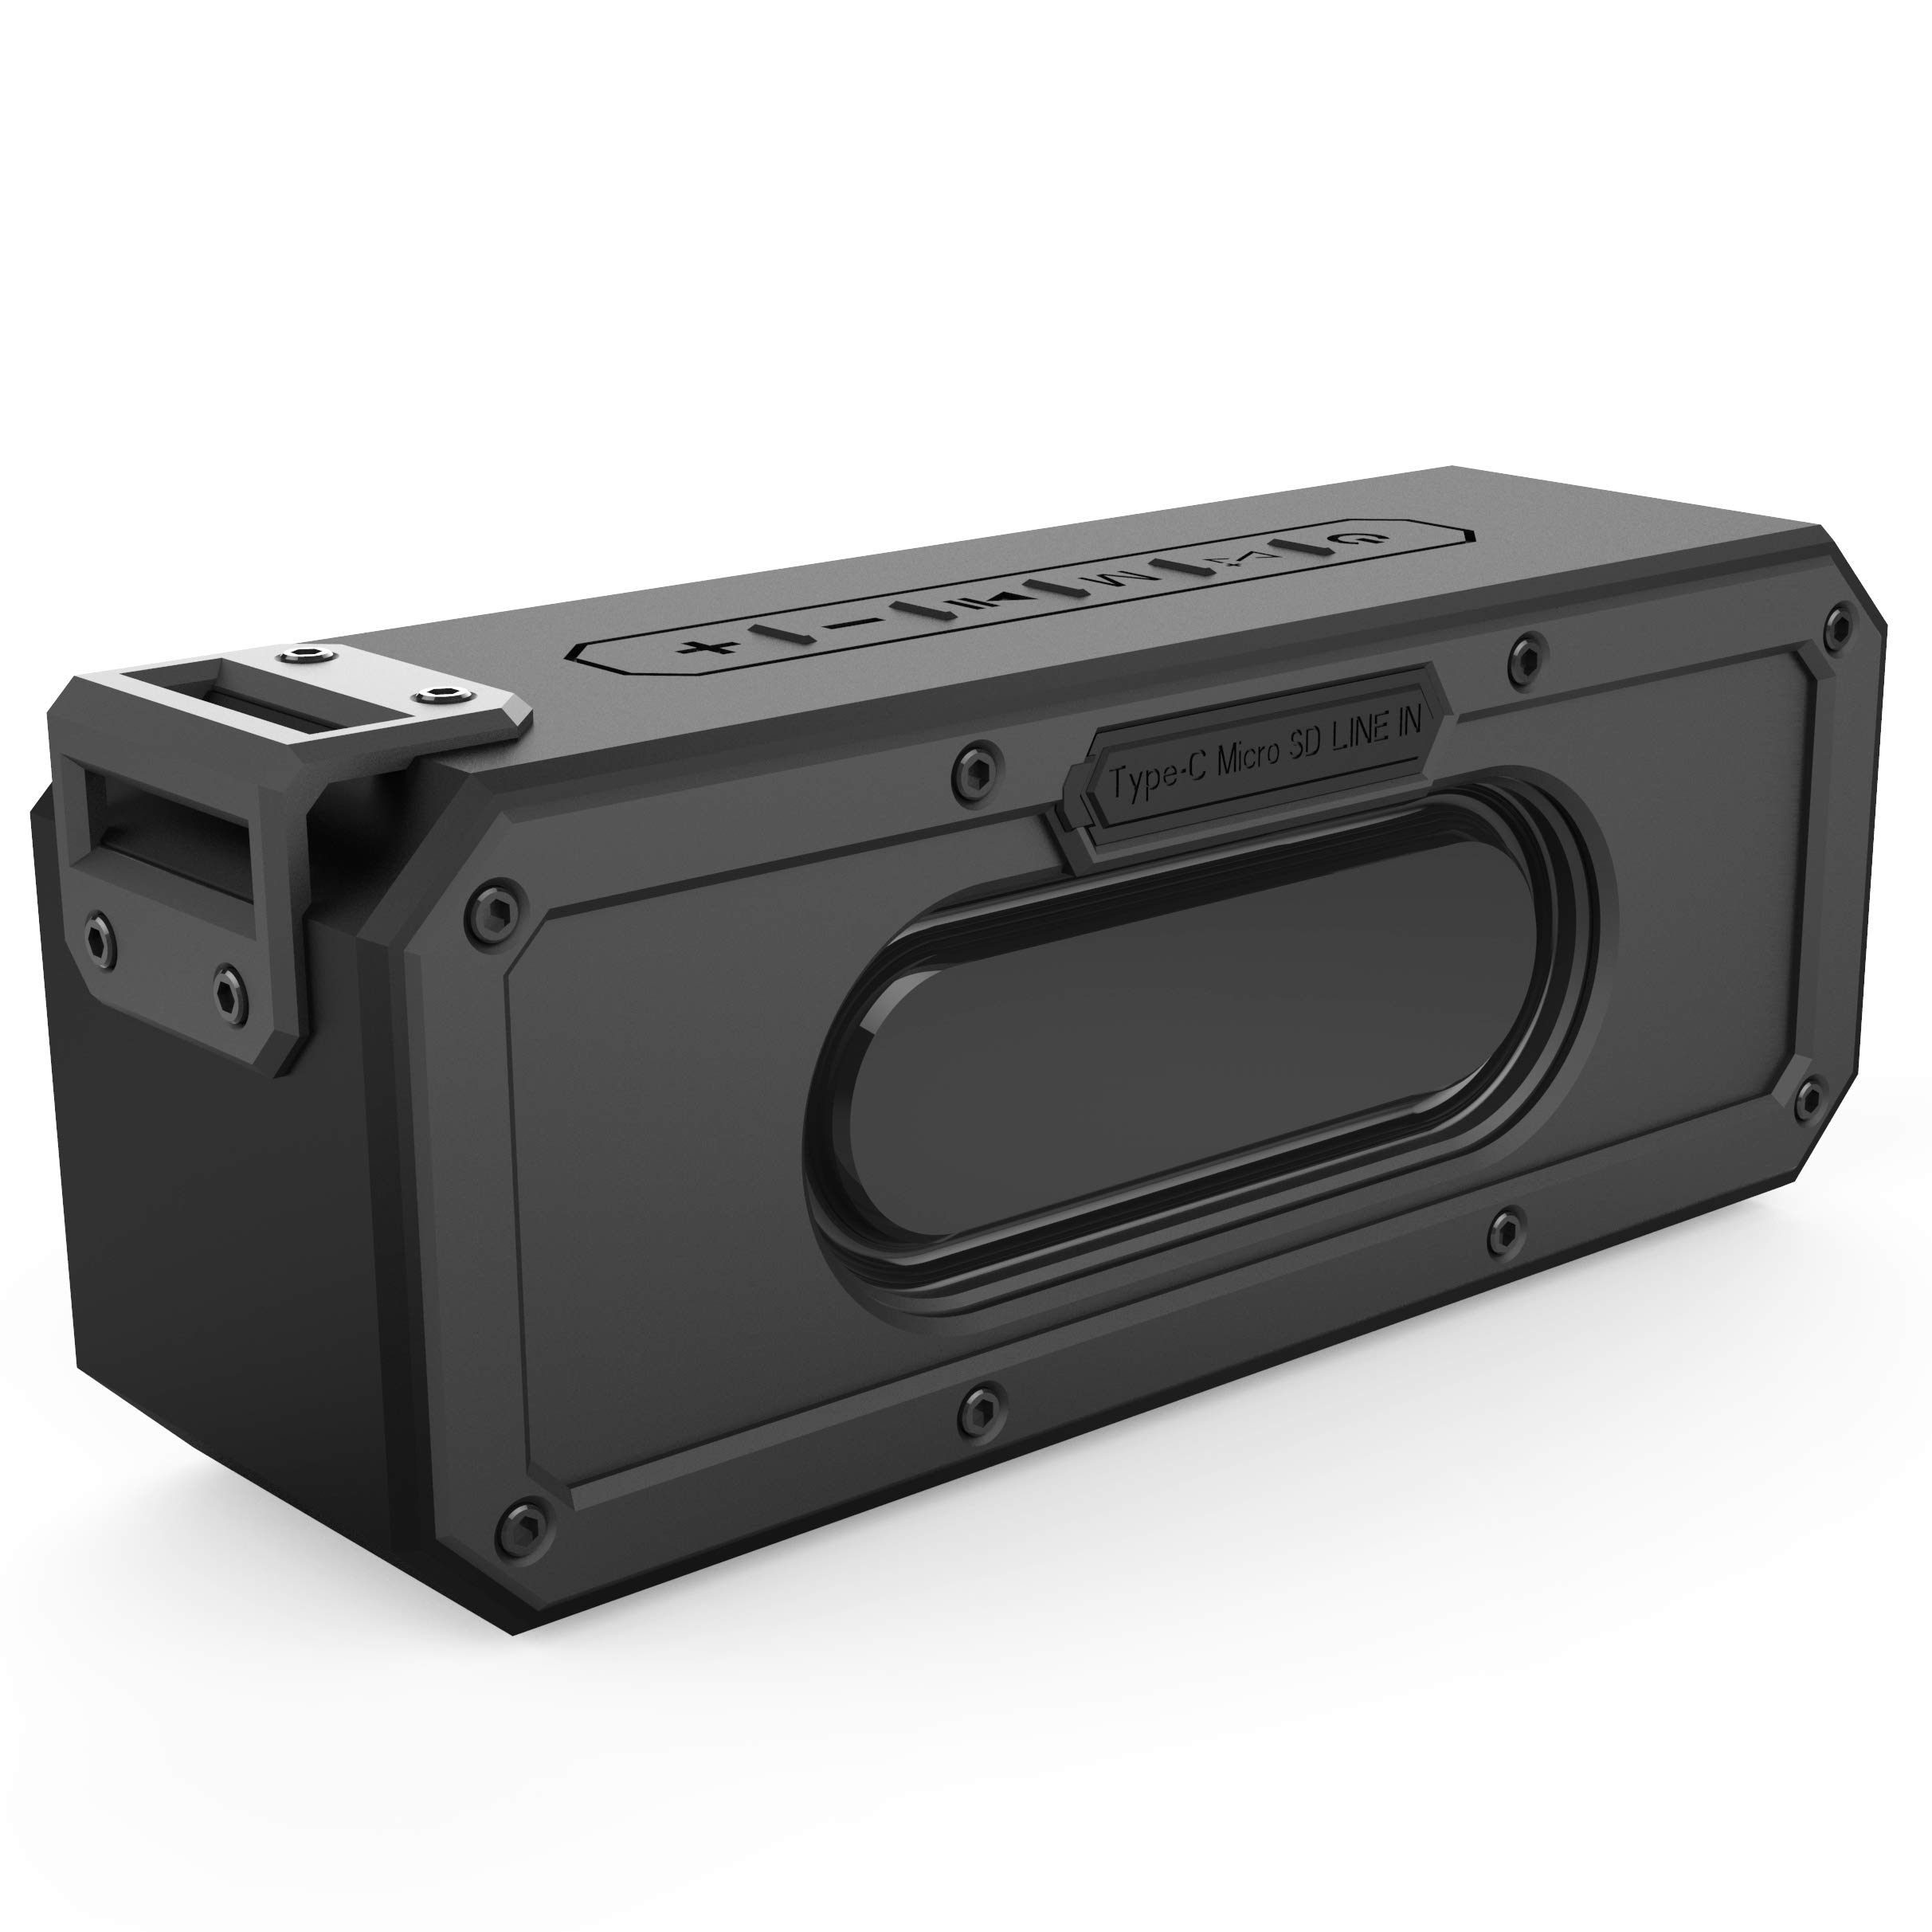 SINOBAND S400 Plus 40W IPX7 Waterproof Dustproof and...